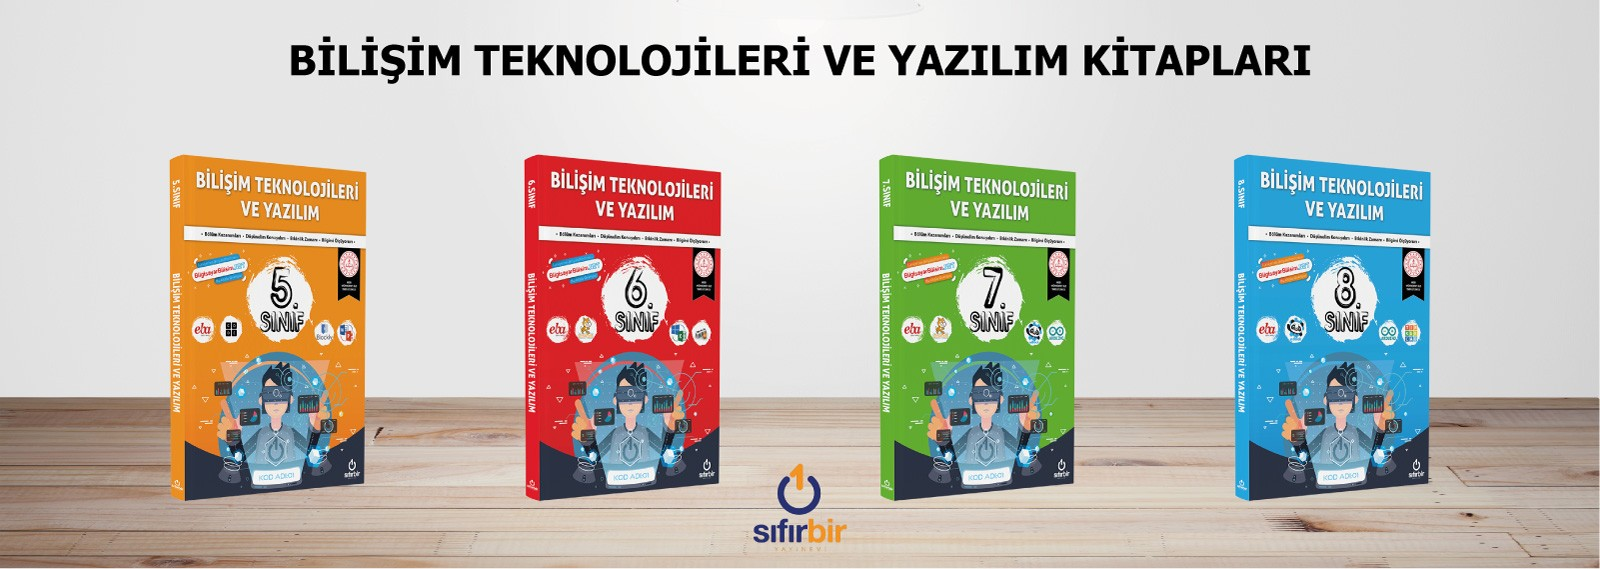 https://www.sifirbiryayinlari.com/modules/iqithtmlandbanners/uploads/images/5f47668cf0405.jpg